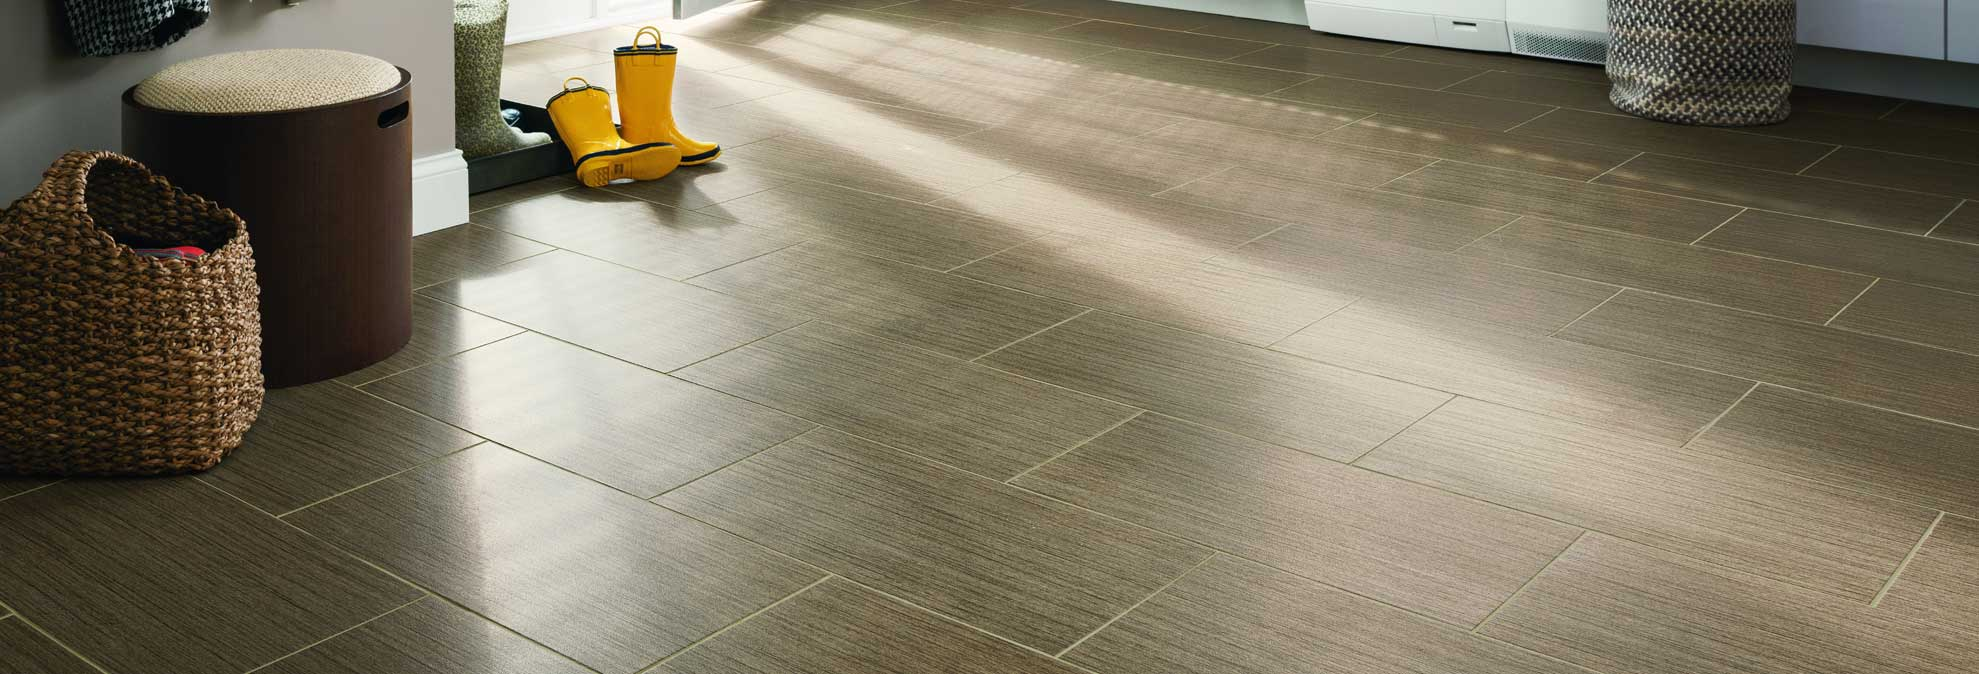 Best Flooring Buying Guide Consumer Reports - What is the best quality vinyl plank flooring